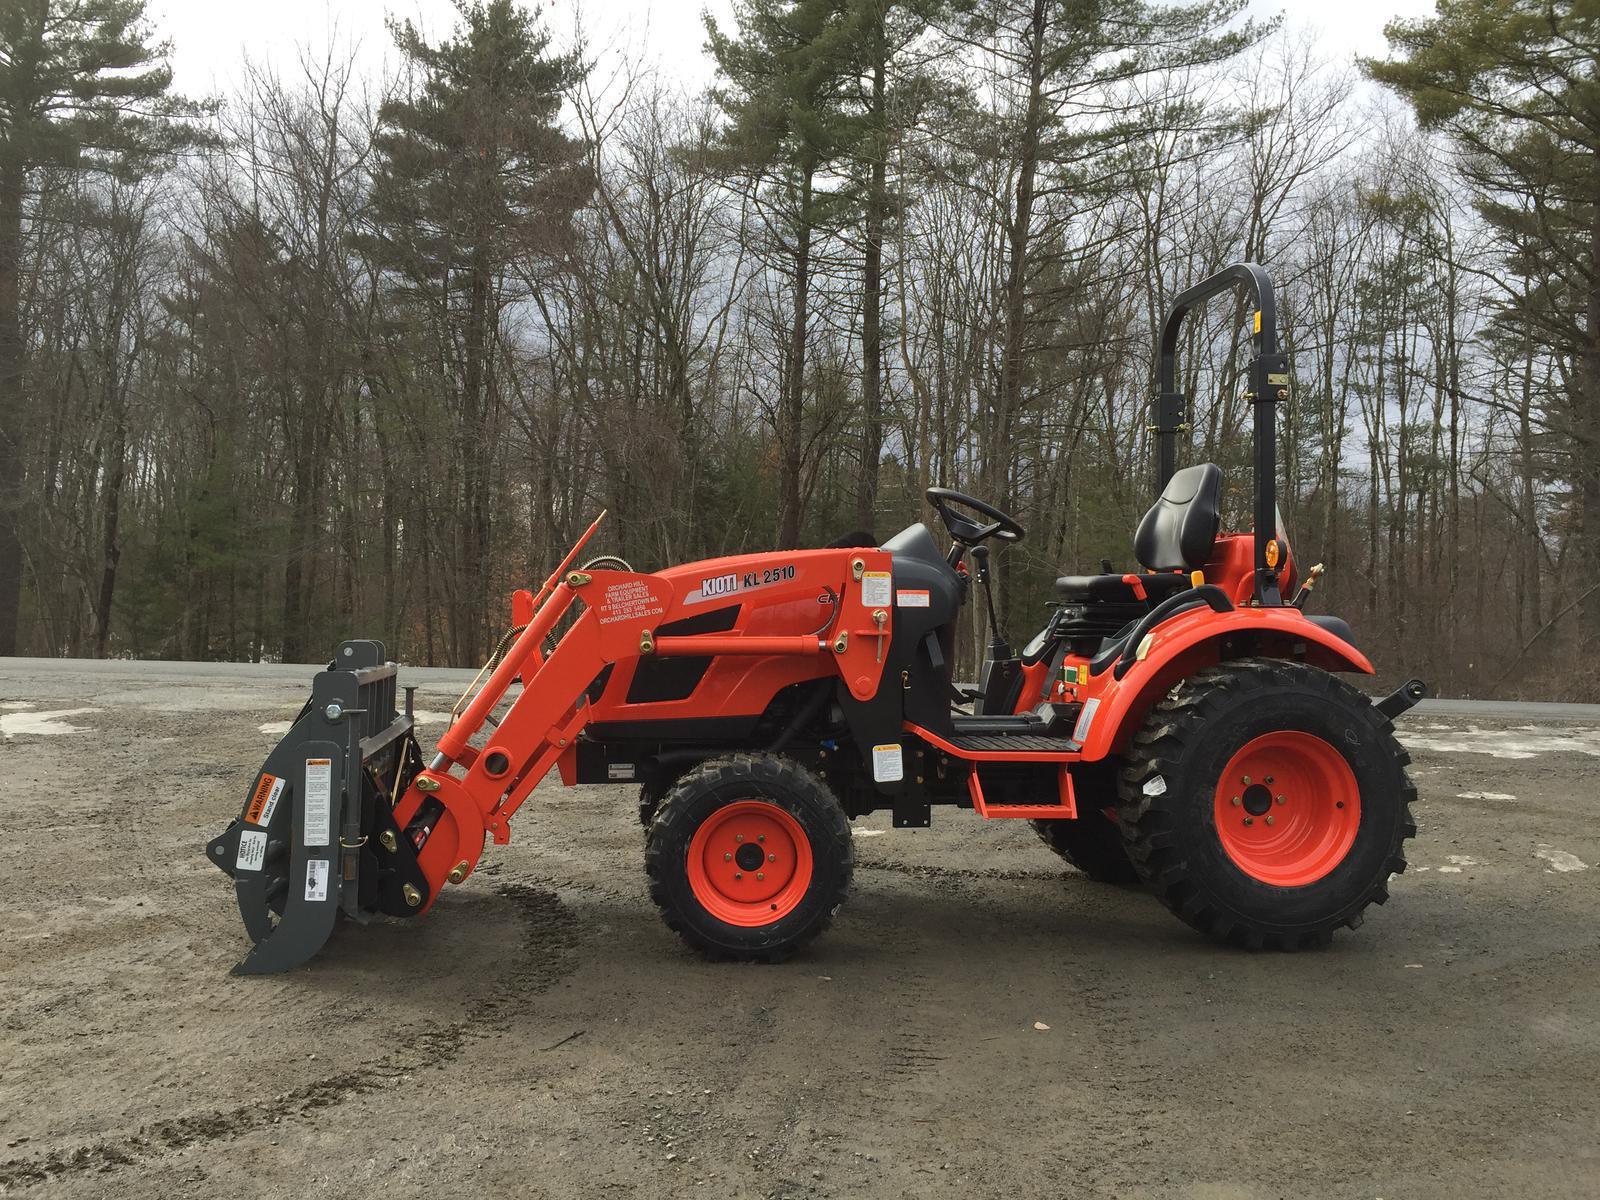 Kioti CK2510 HST Tractor w/ Loader & Grapple for sale in Belchertown